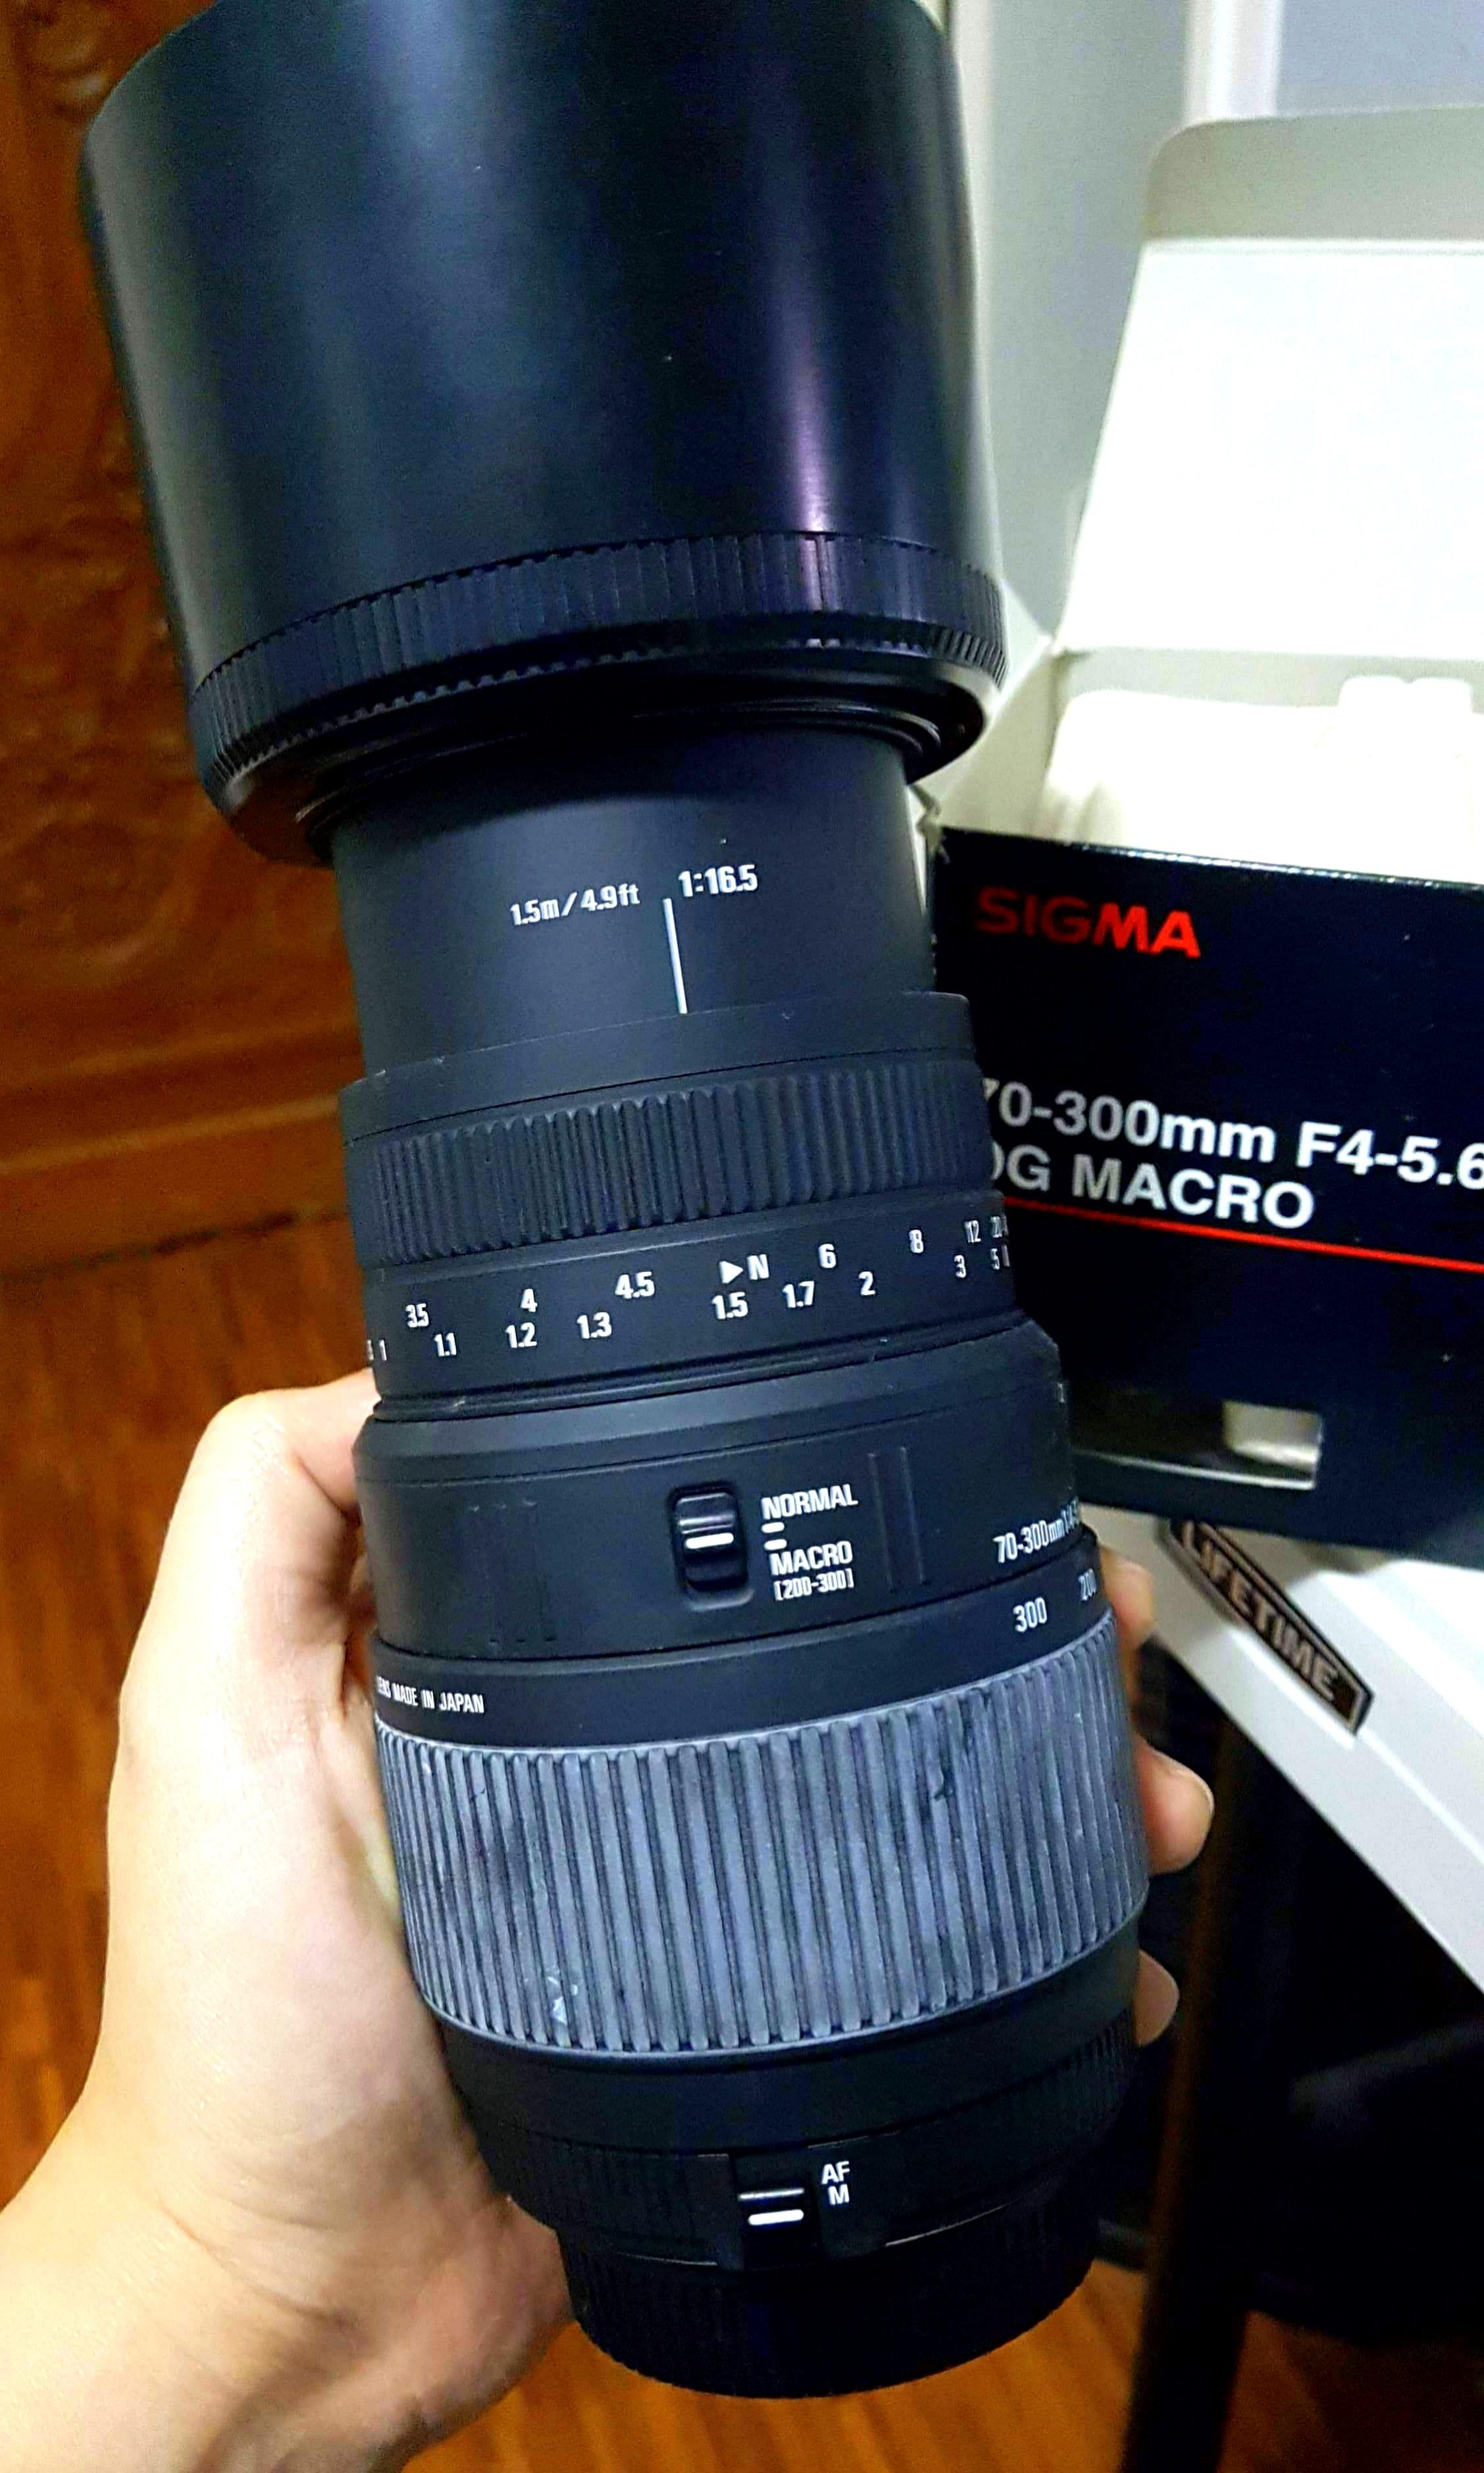 SIGMA 70-300mm F4-5.6 DG Macro photo